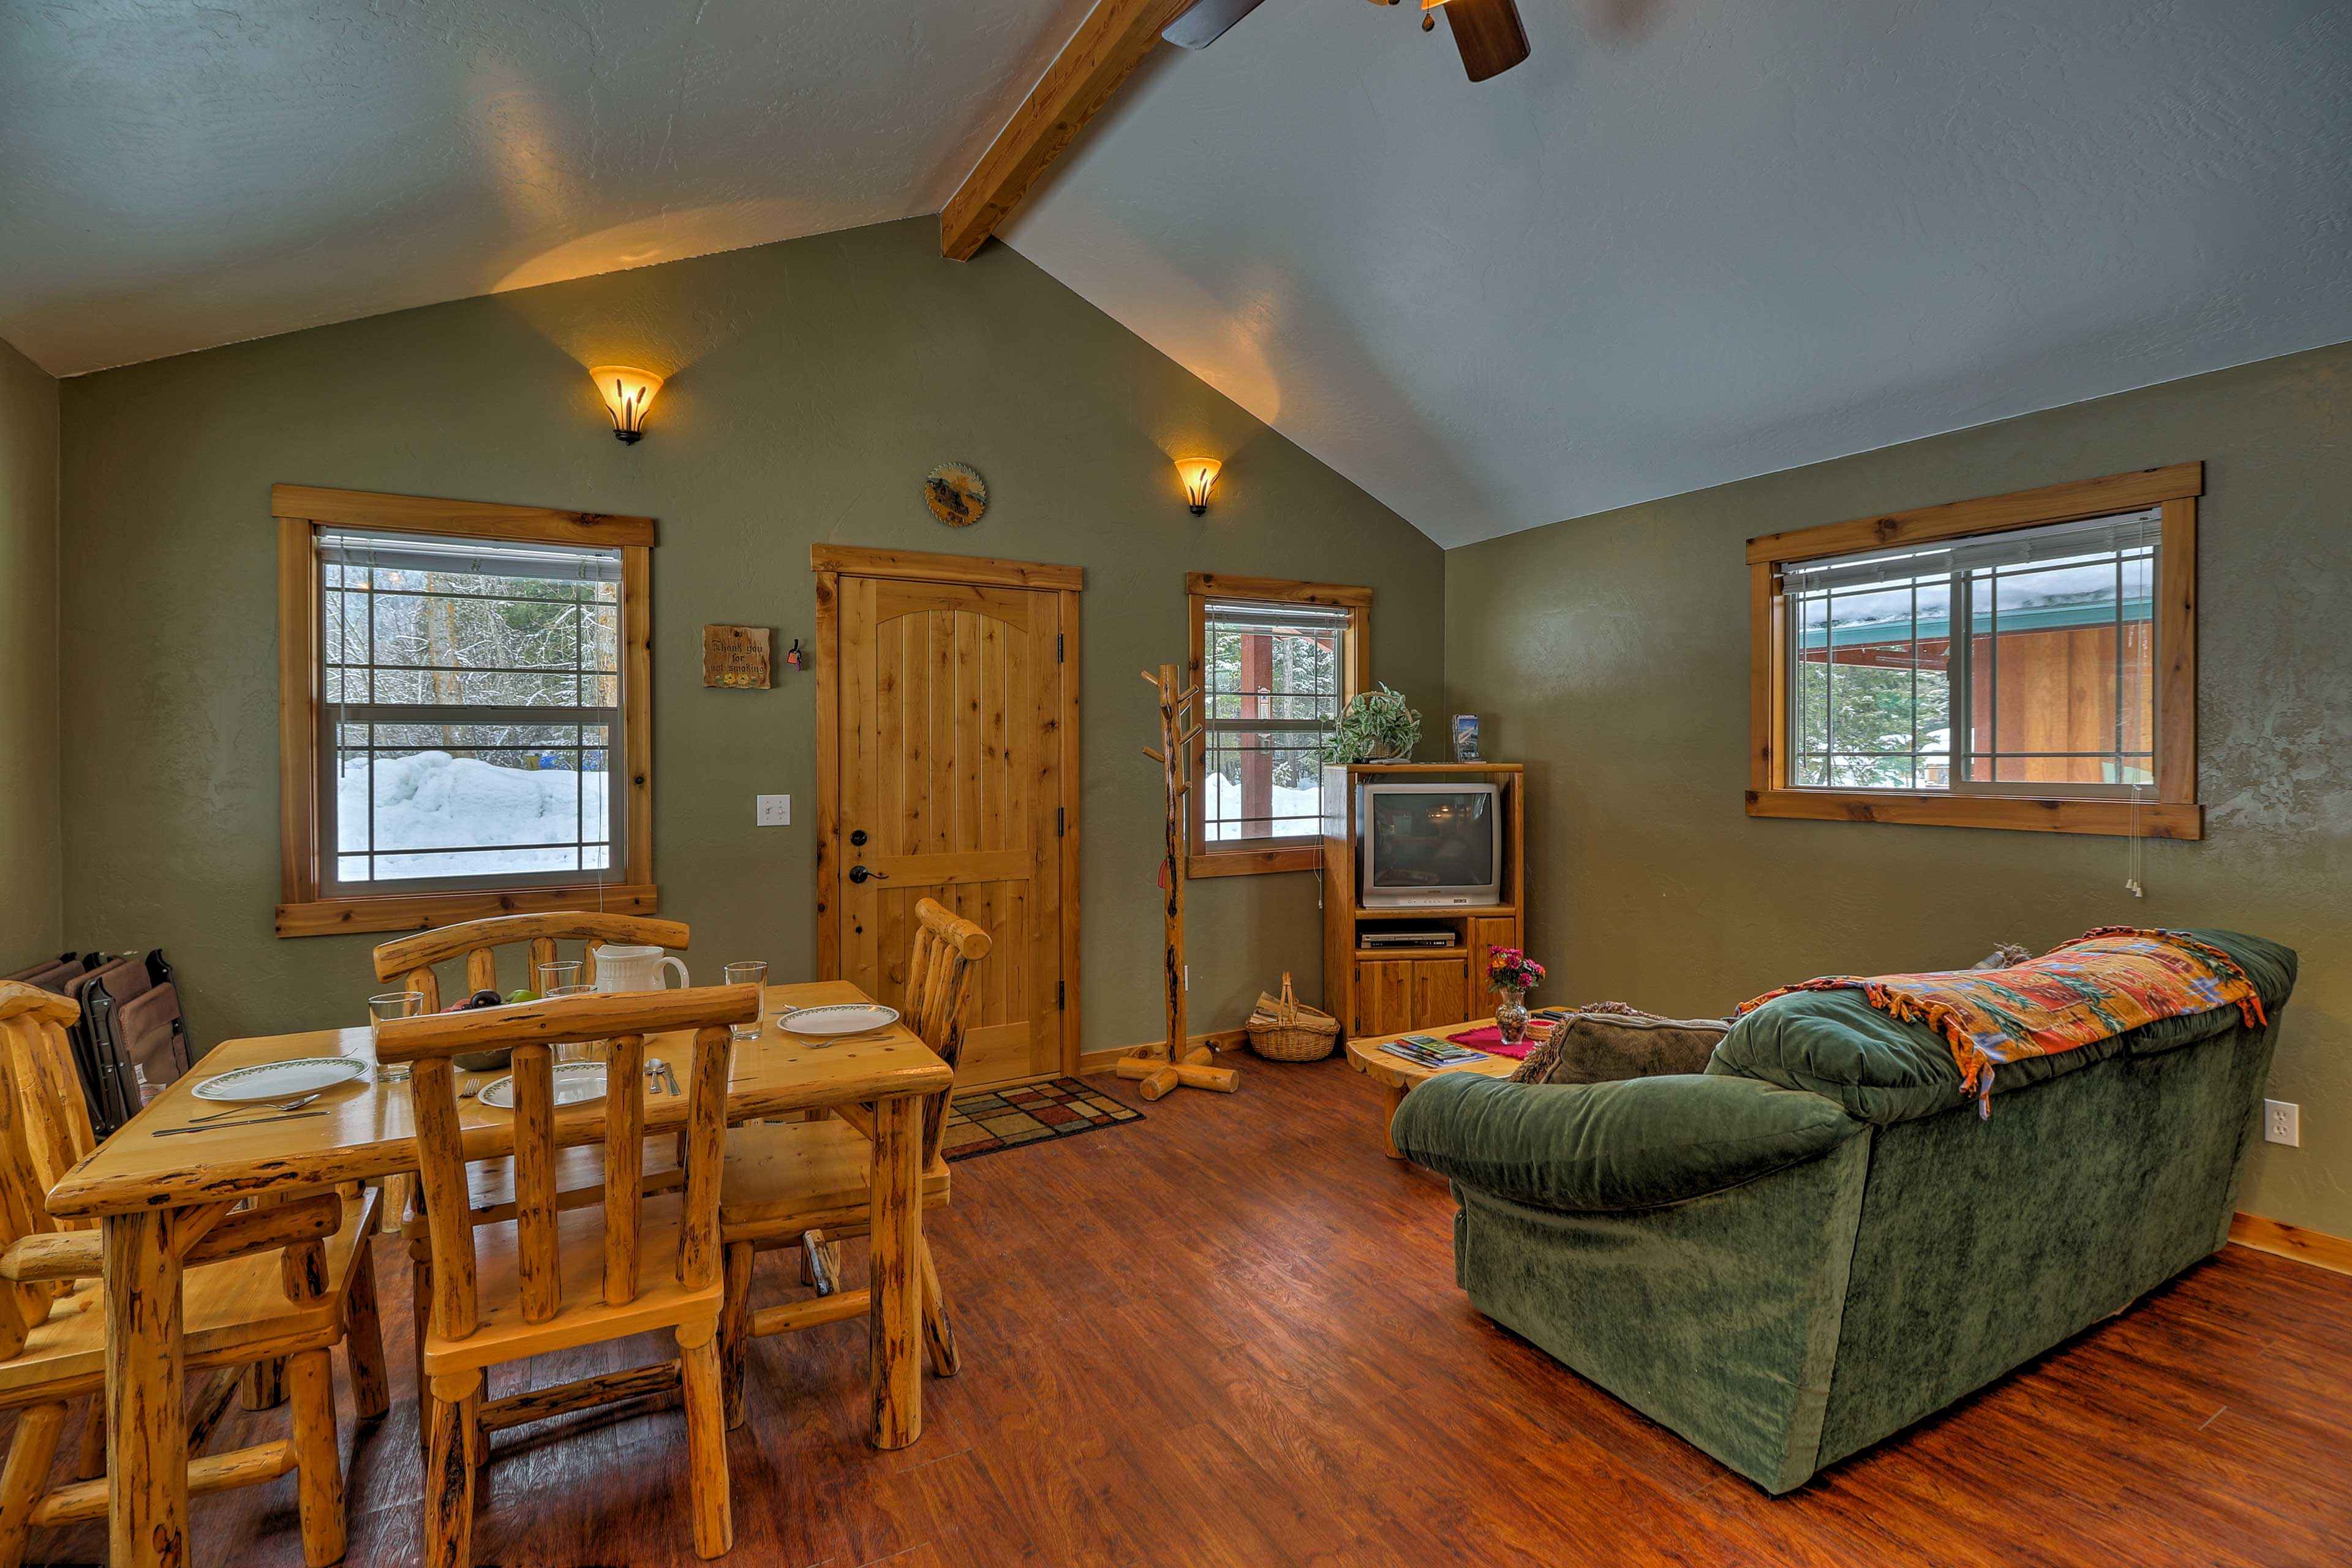 Vaulted ceilings and lots of windows add to the home's spaciousness.